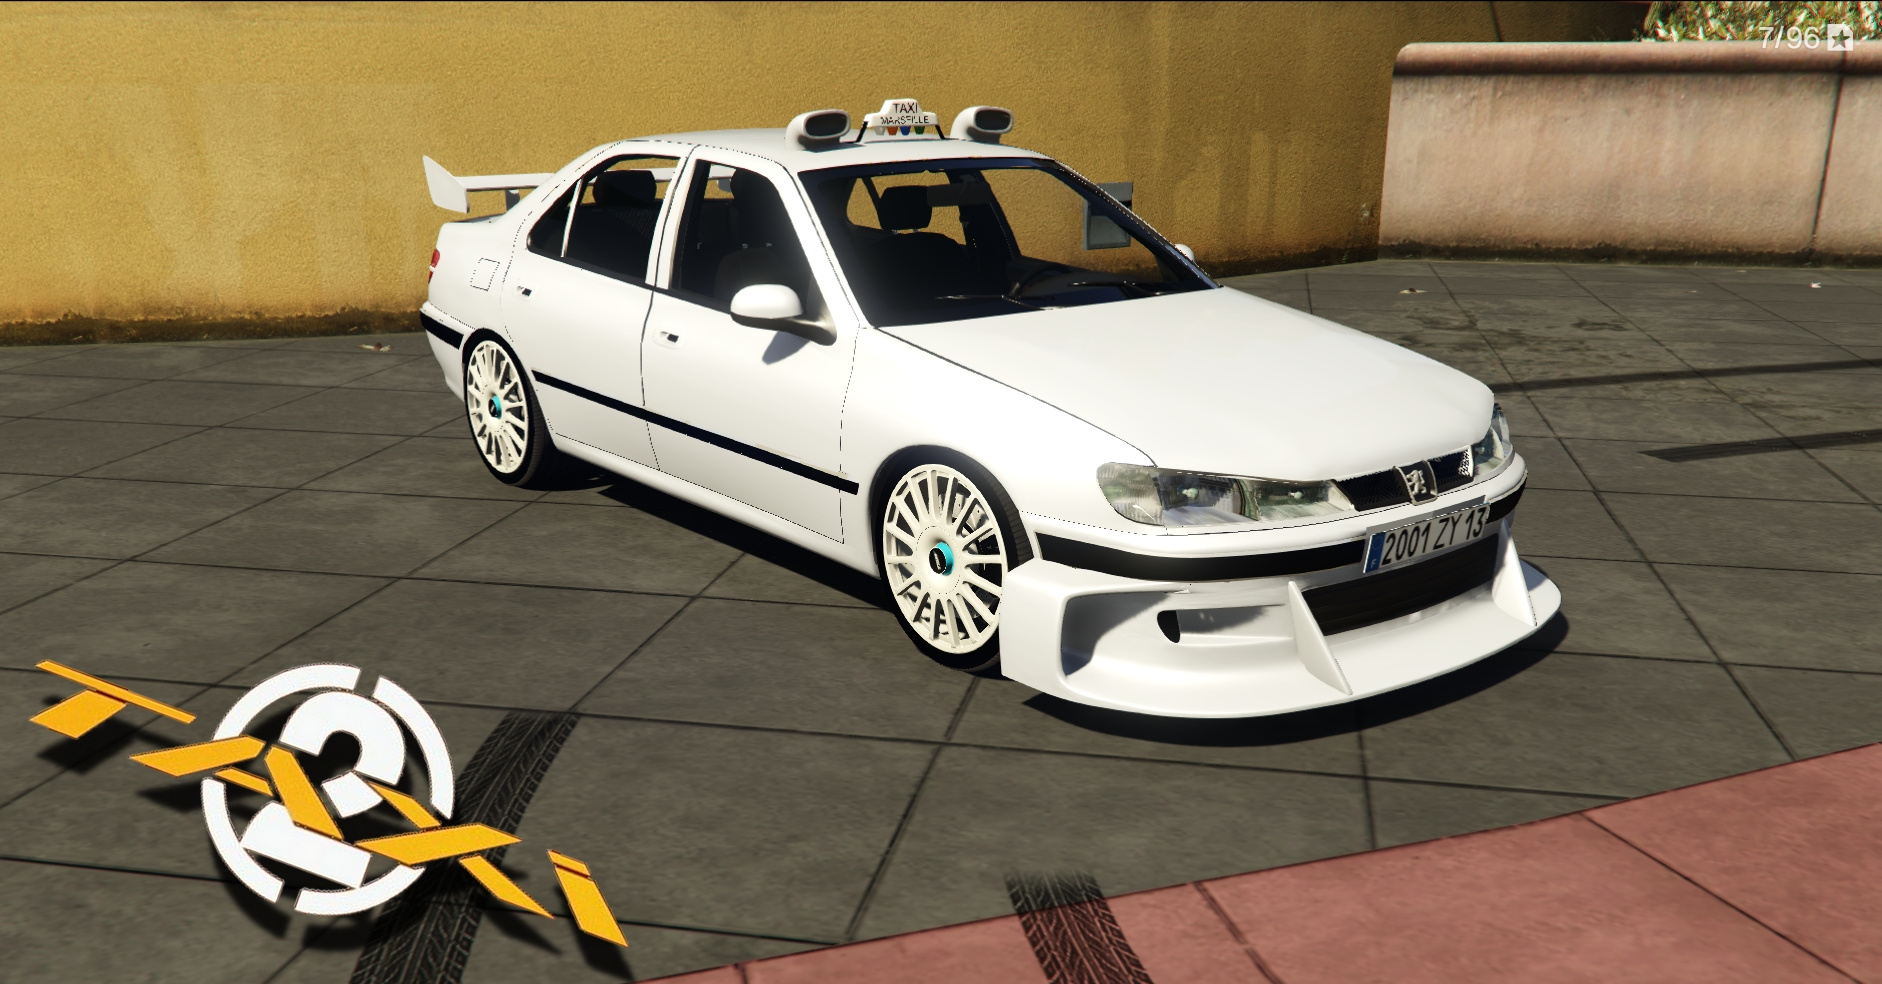 peugeot 406 taxi 2 add on dials tuning gta5. Black Bedroom Furniture Sets. Home Design Ideas